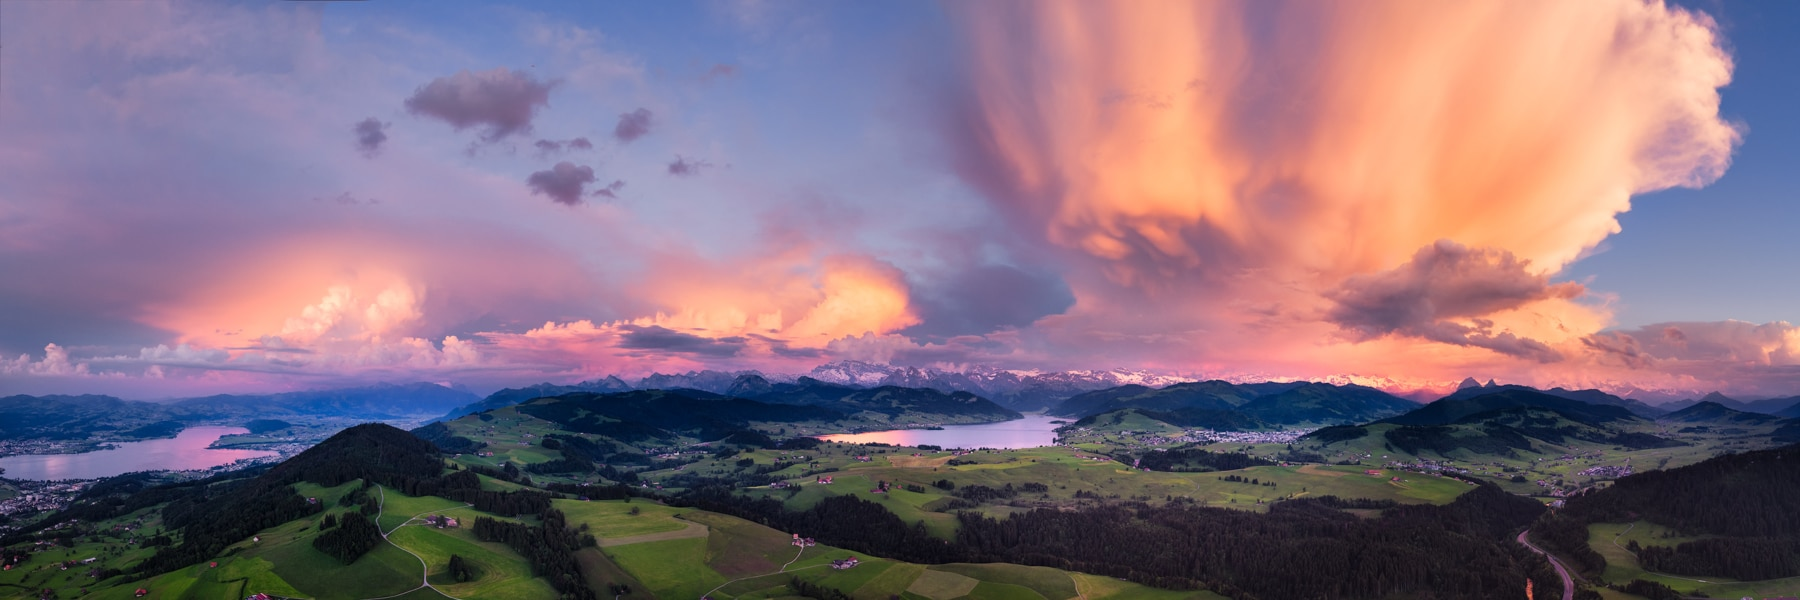 panoramic aerial photograph of major thunderstorm cells over central Schwyz © by Gerry Pacher